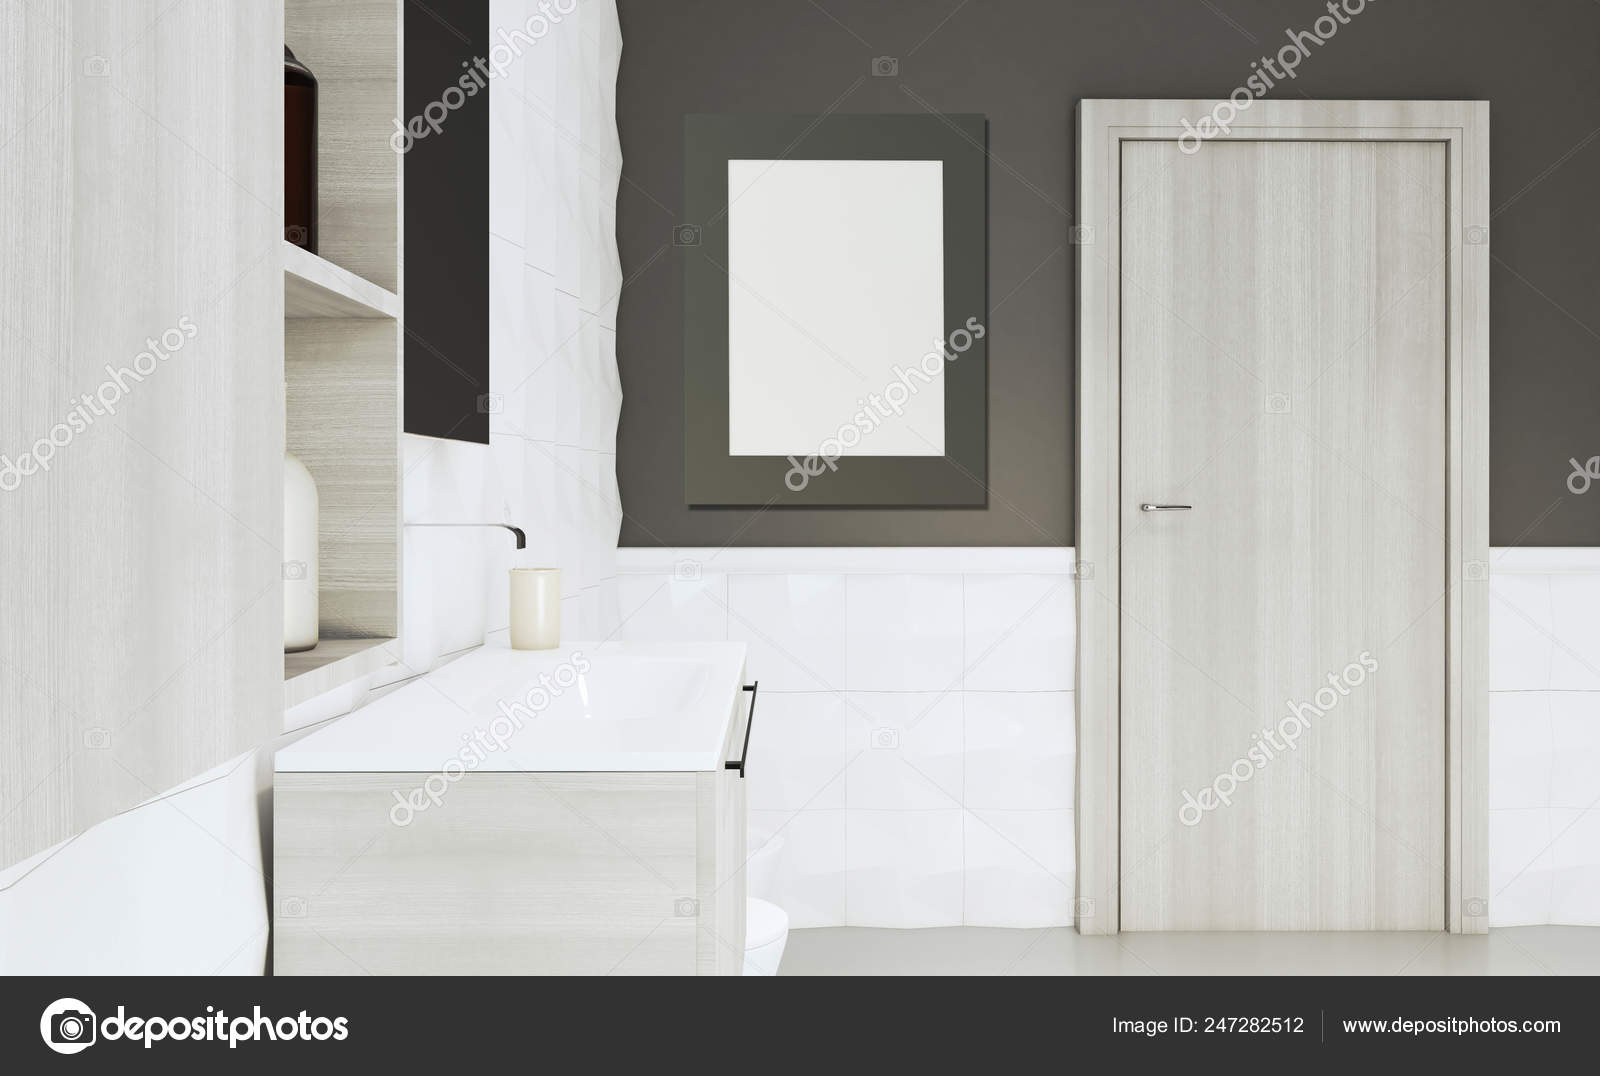 Bathroom Brown Walls White Tiles Gray Furniture Large Interior Door Stock Photo C Kellkinel 247282512,Ikea Malm Twin Bed With Drawers Instructions